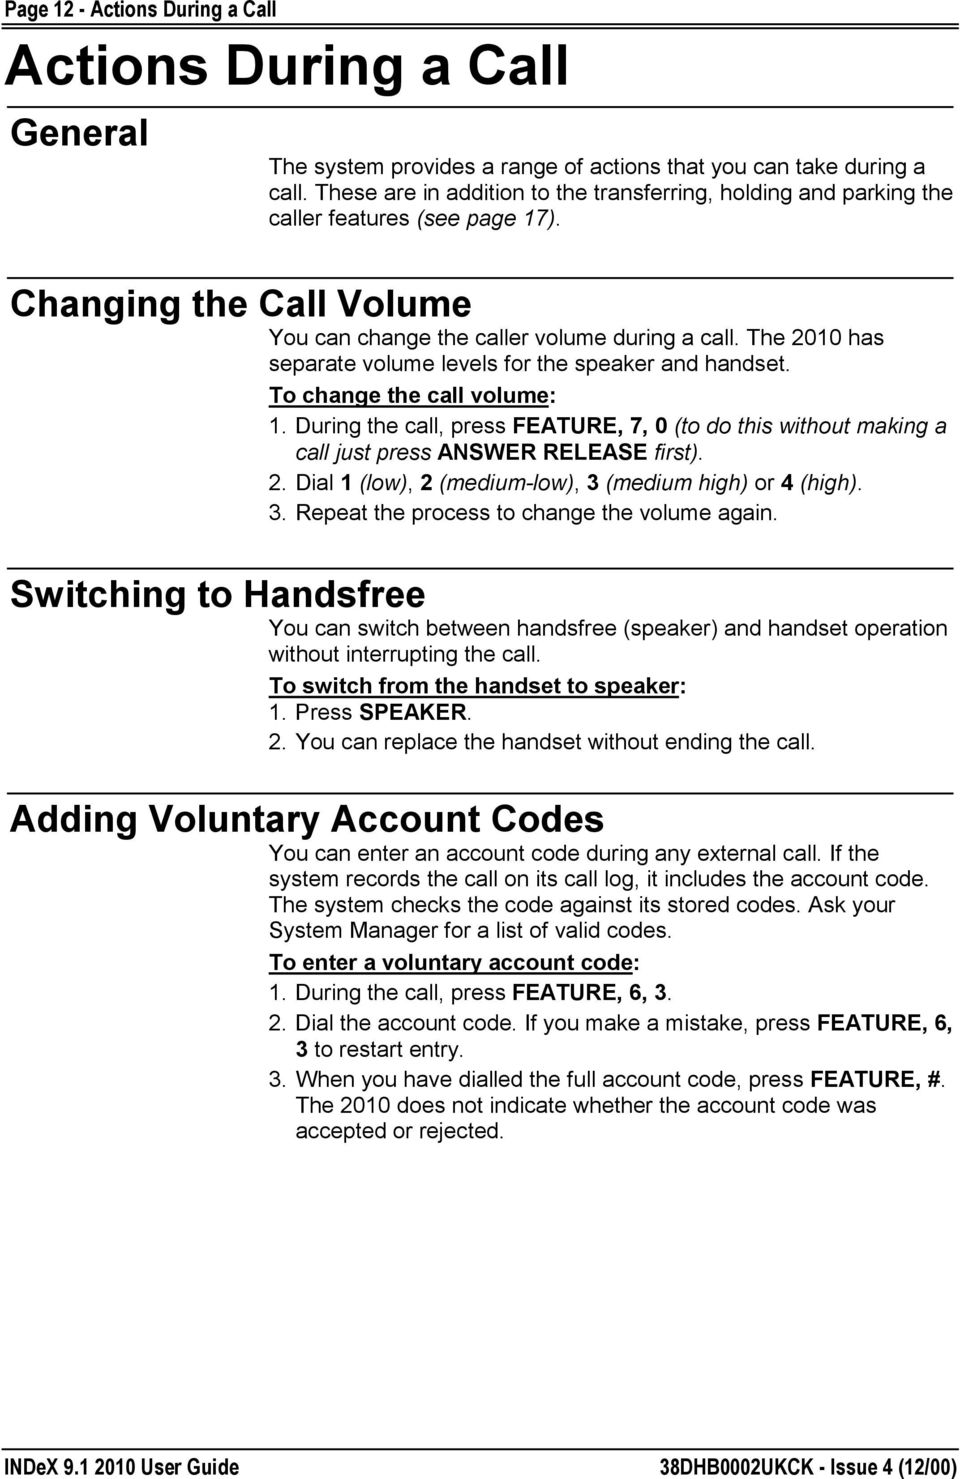 The 2010 has separate volume levels for the speaker and handset. To change the call volume: 1. During the call, press FEATURE, 7, 0 (to do this without making a call just press ANSWER RELEASE first).